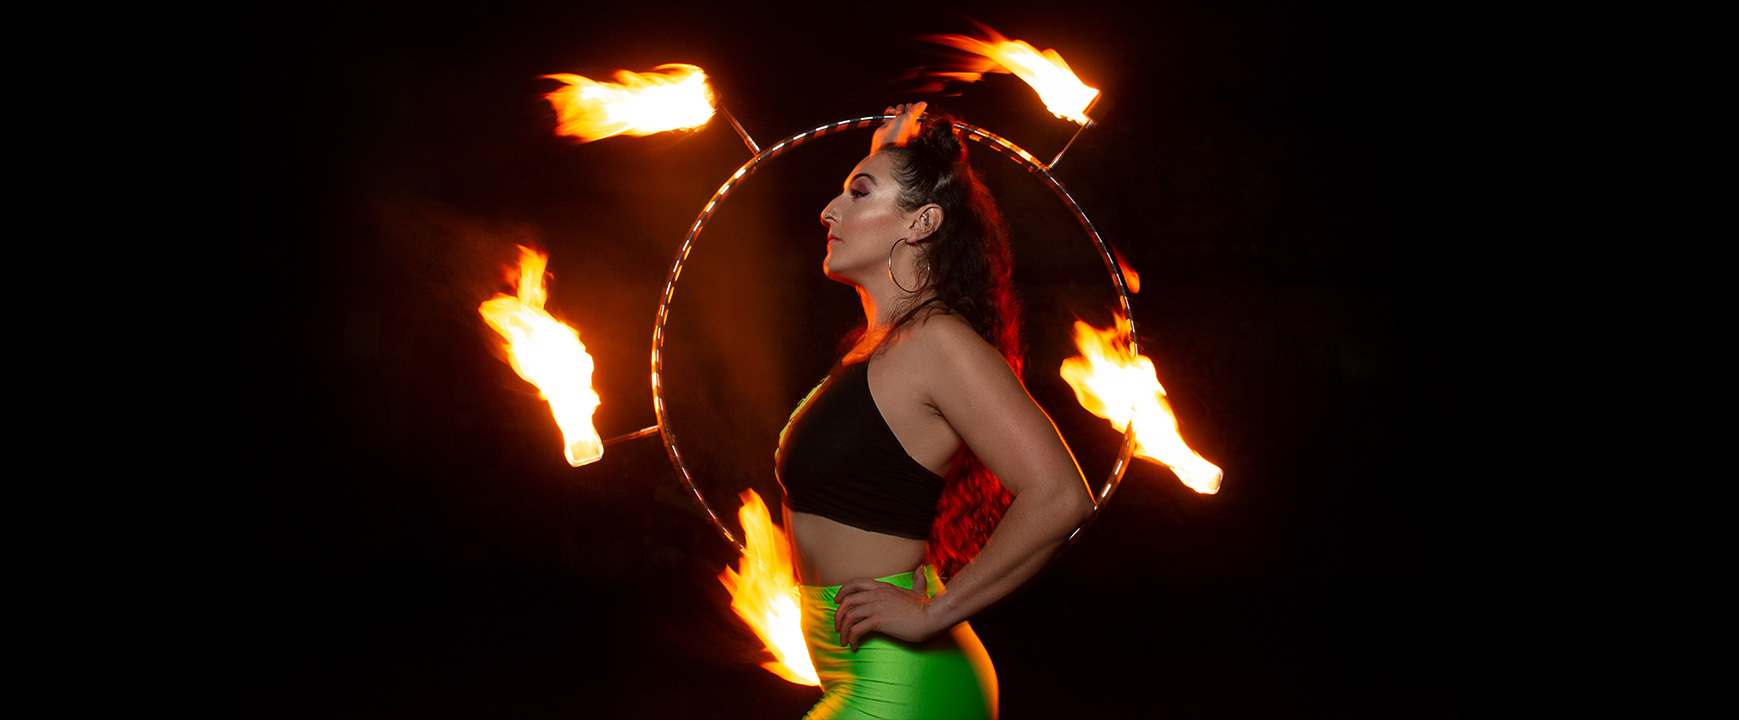 Portrait of a fire performer. Dance and performance photographer Birmingham